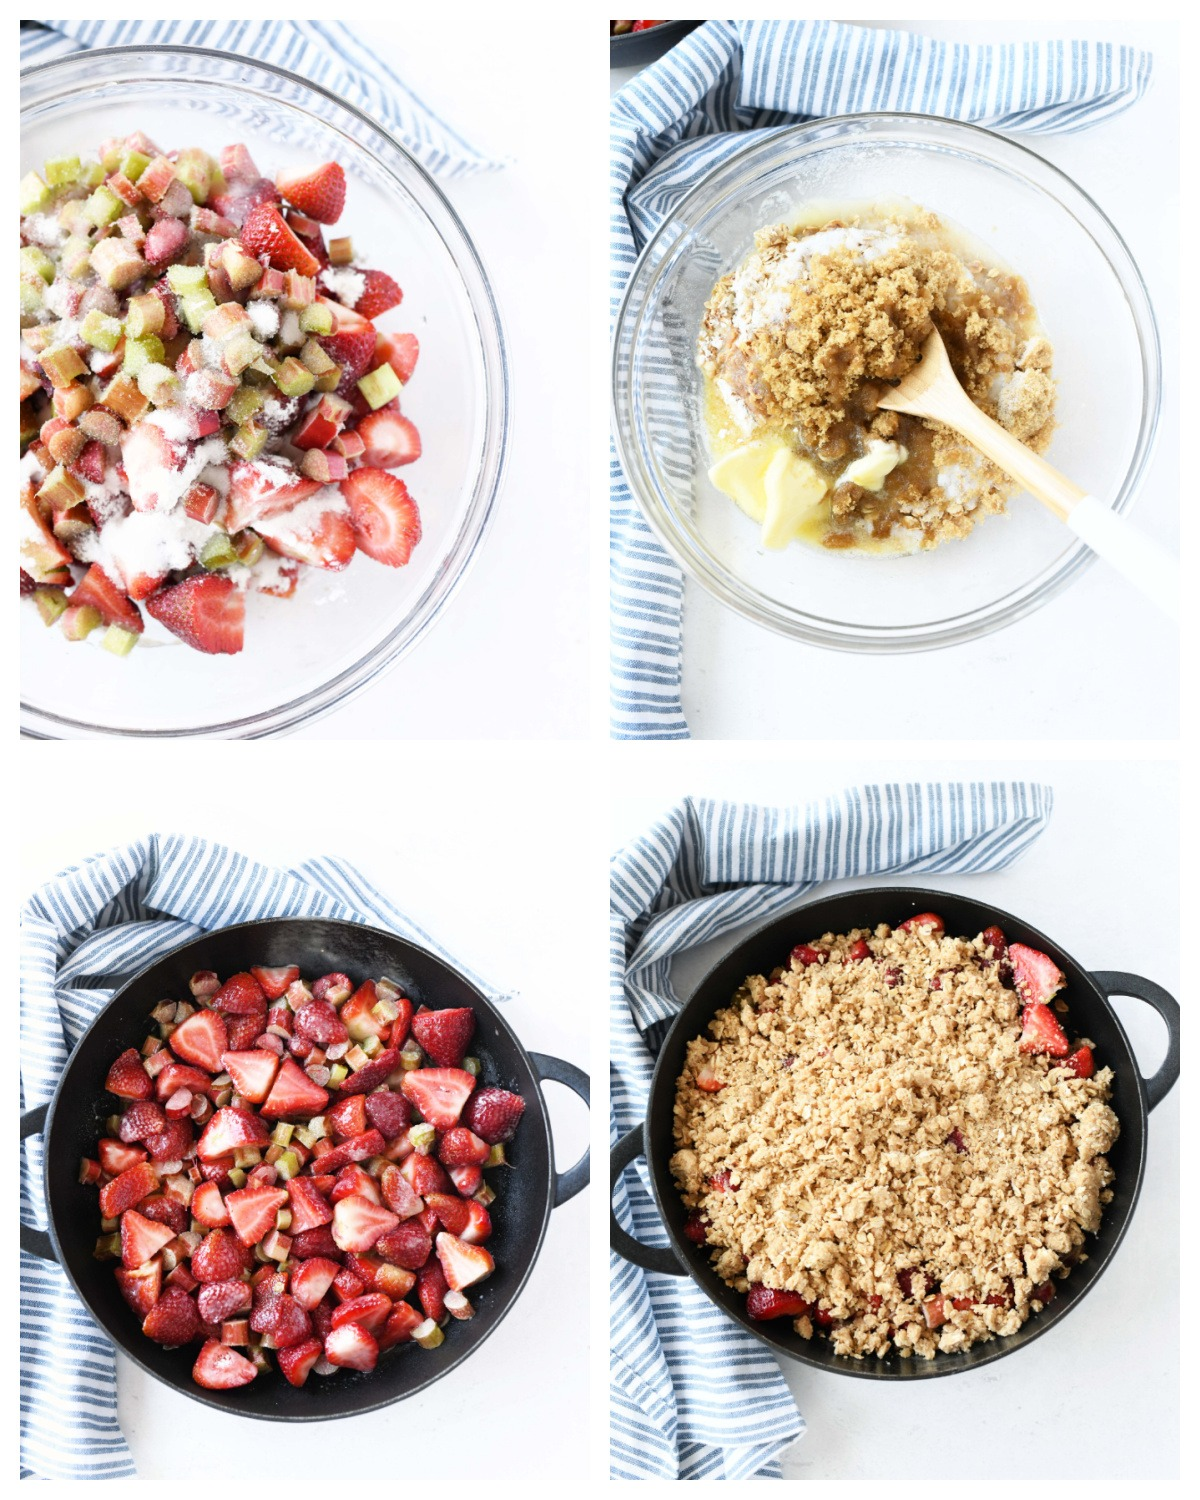 A four image collage showcasing how to make strawberry rhubarb crisp.